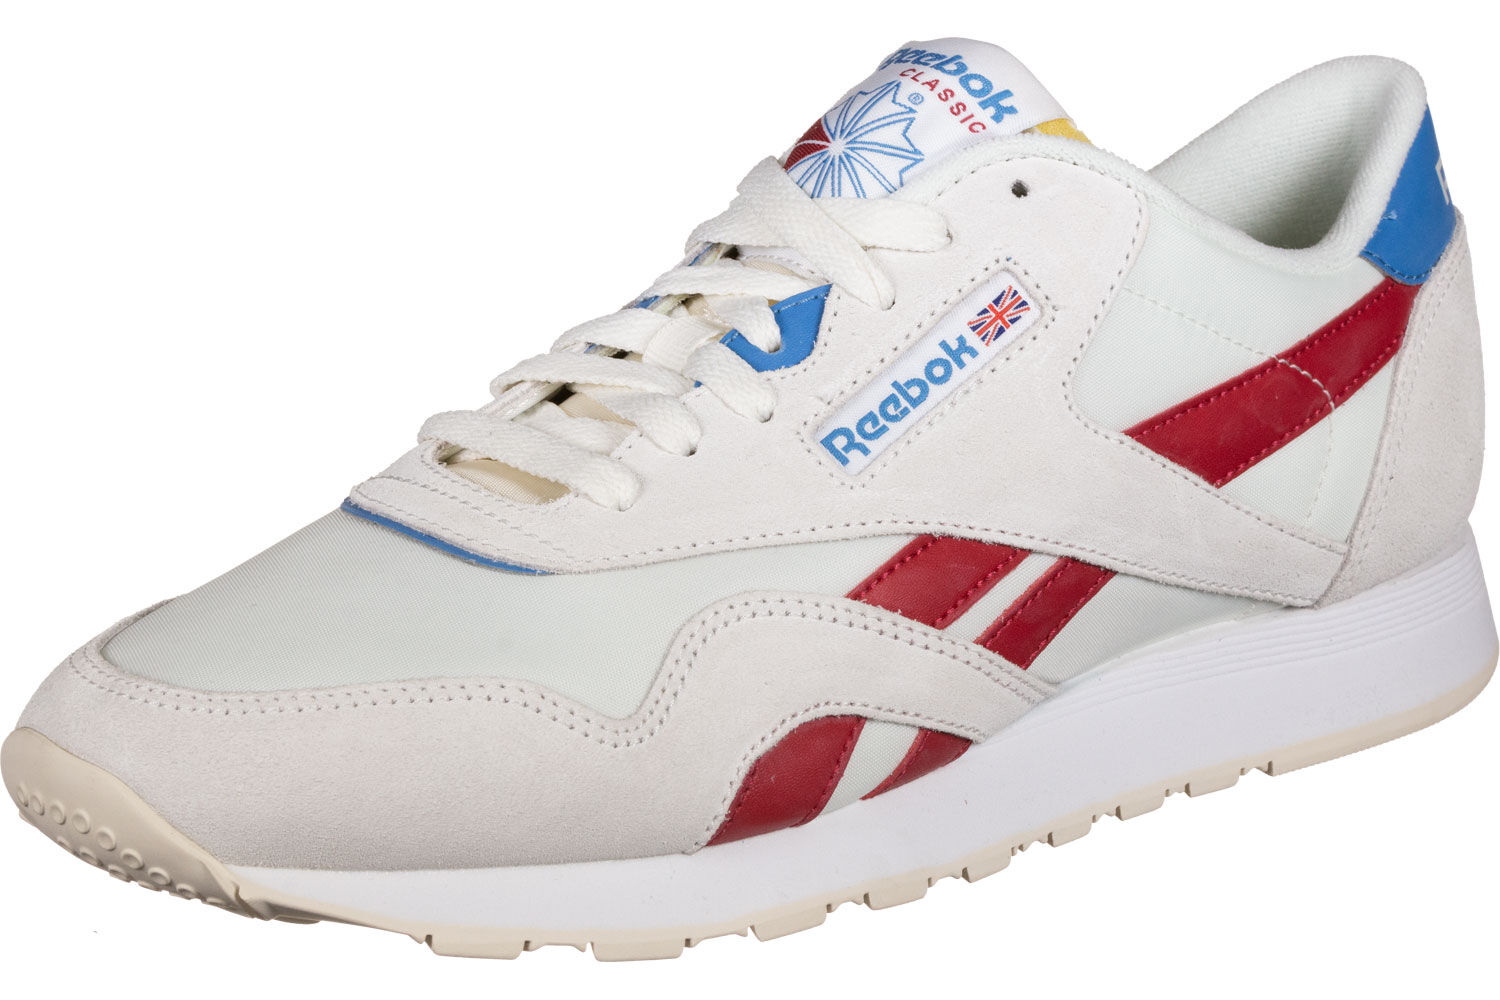 Reebok CL Nylon - Sneakers Low at Stylefile